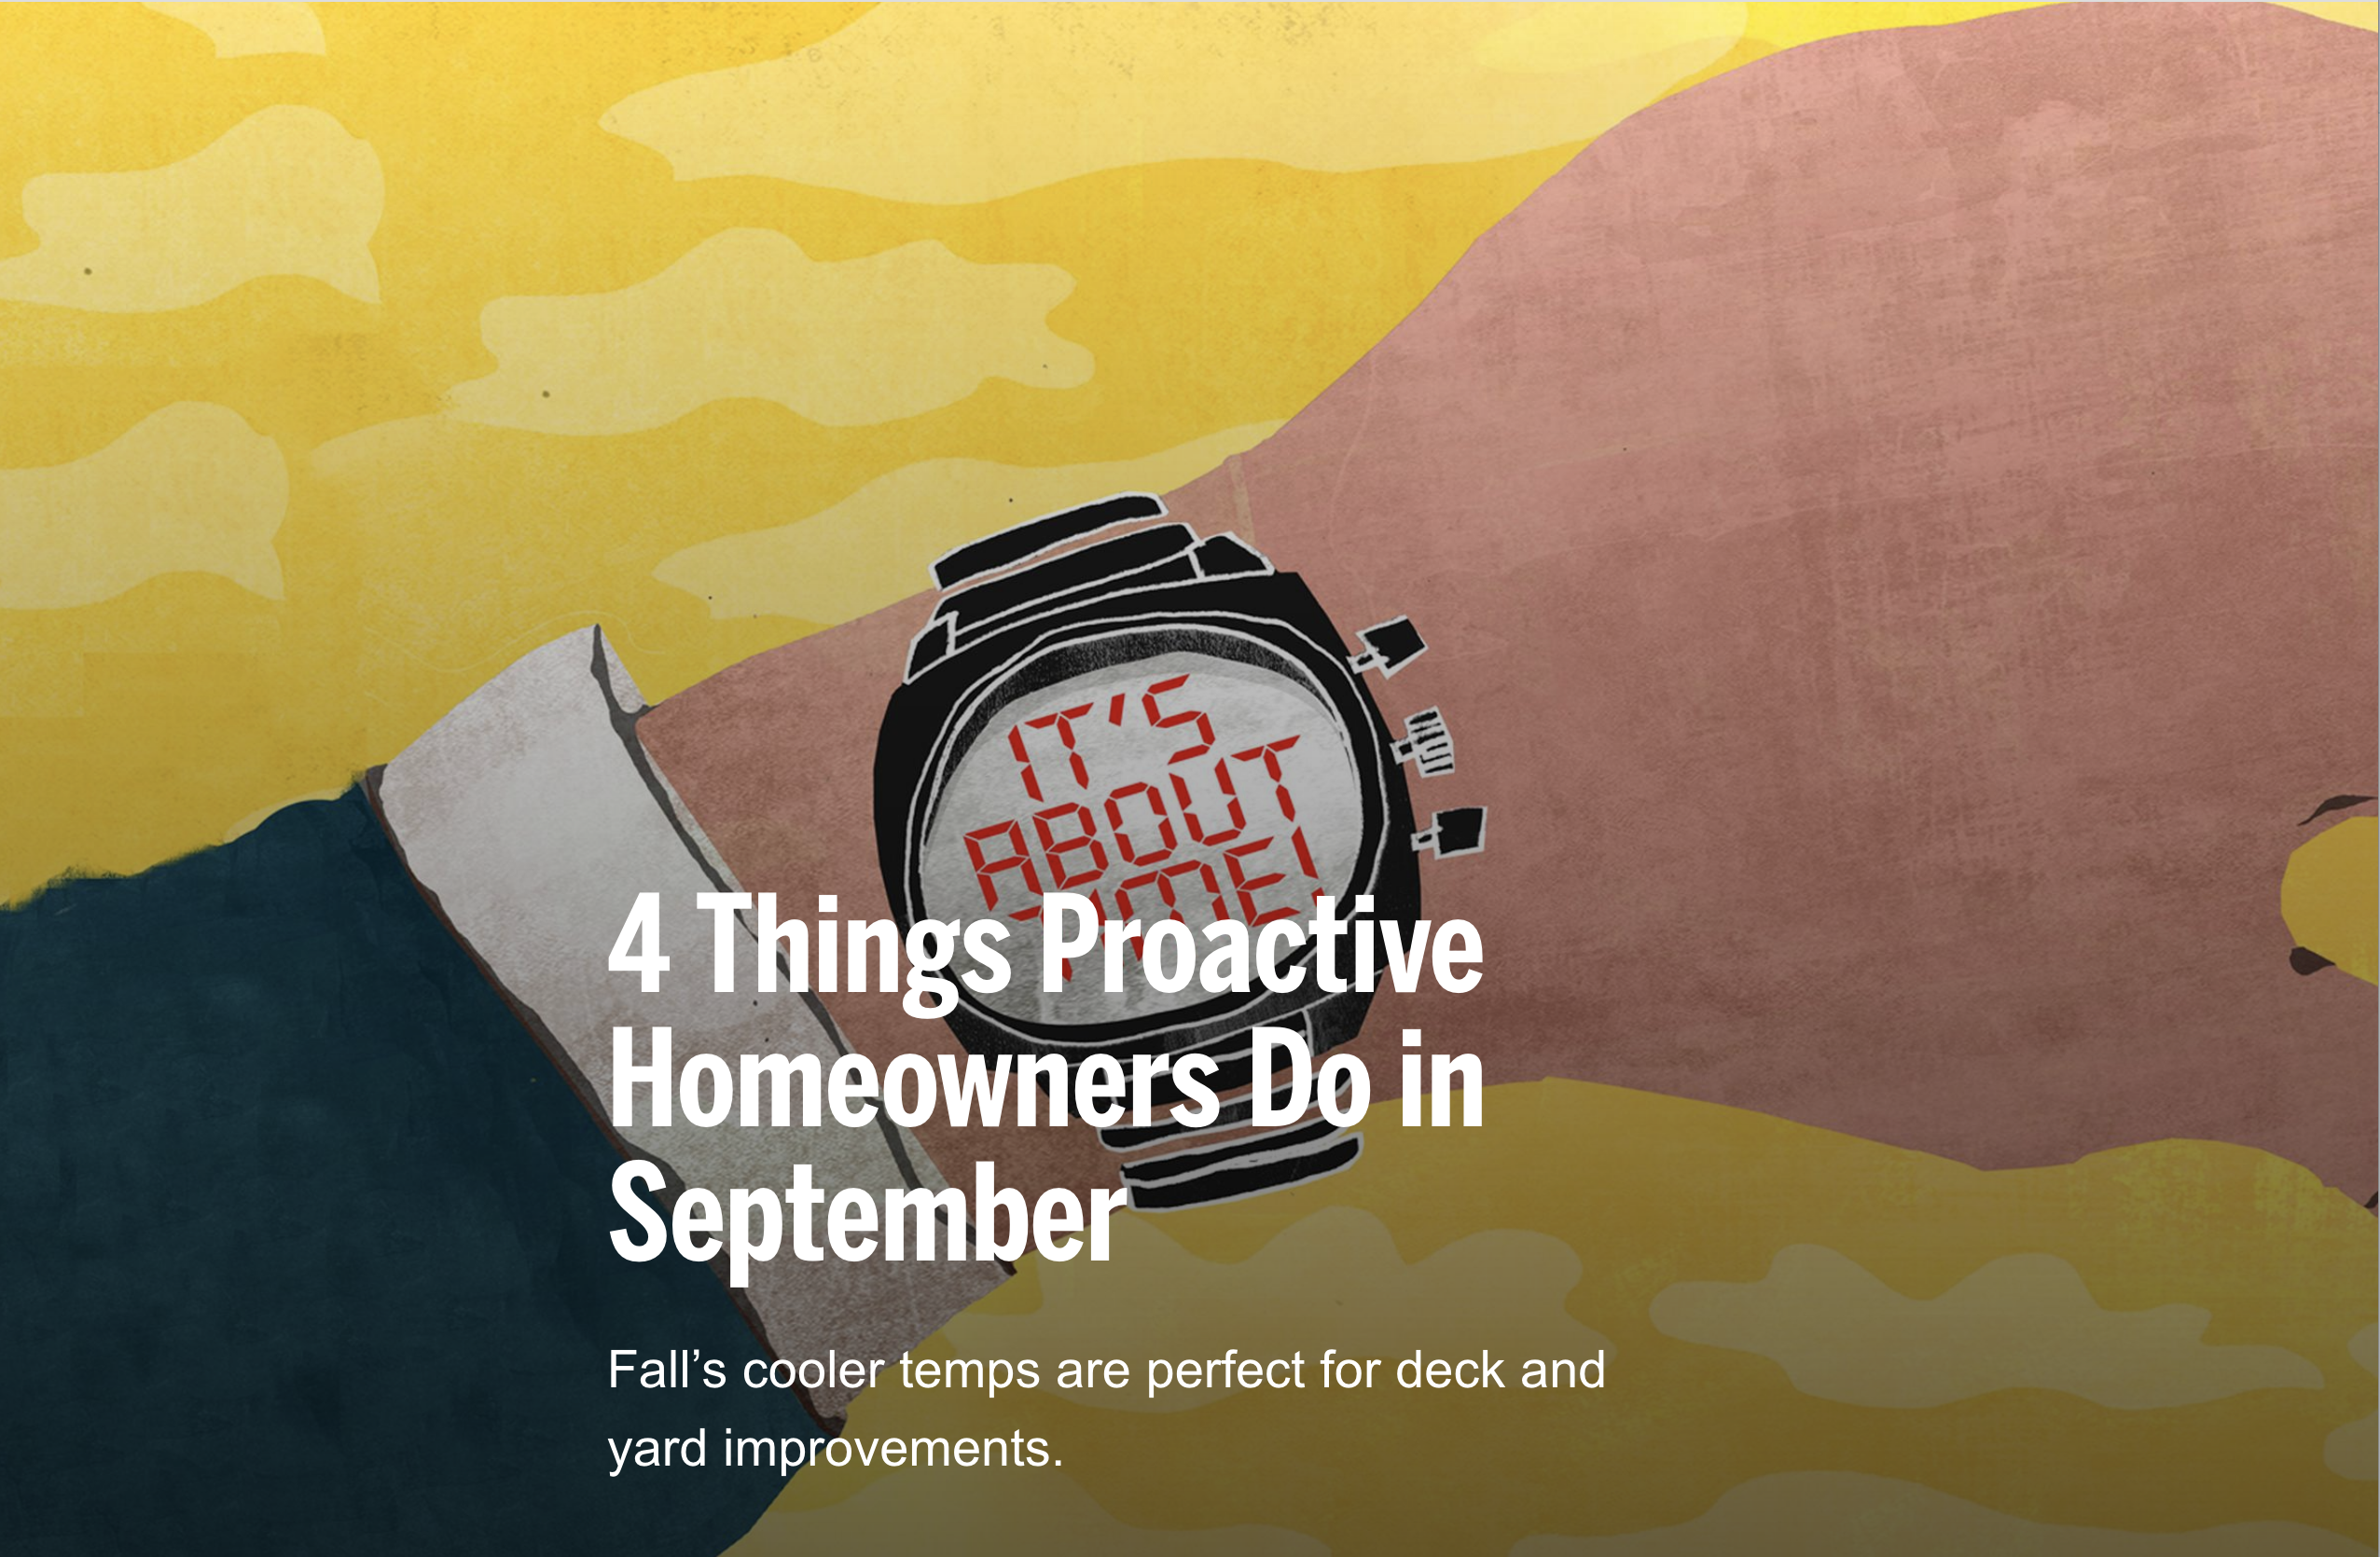 Things to do in September